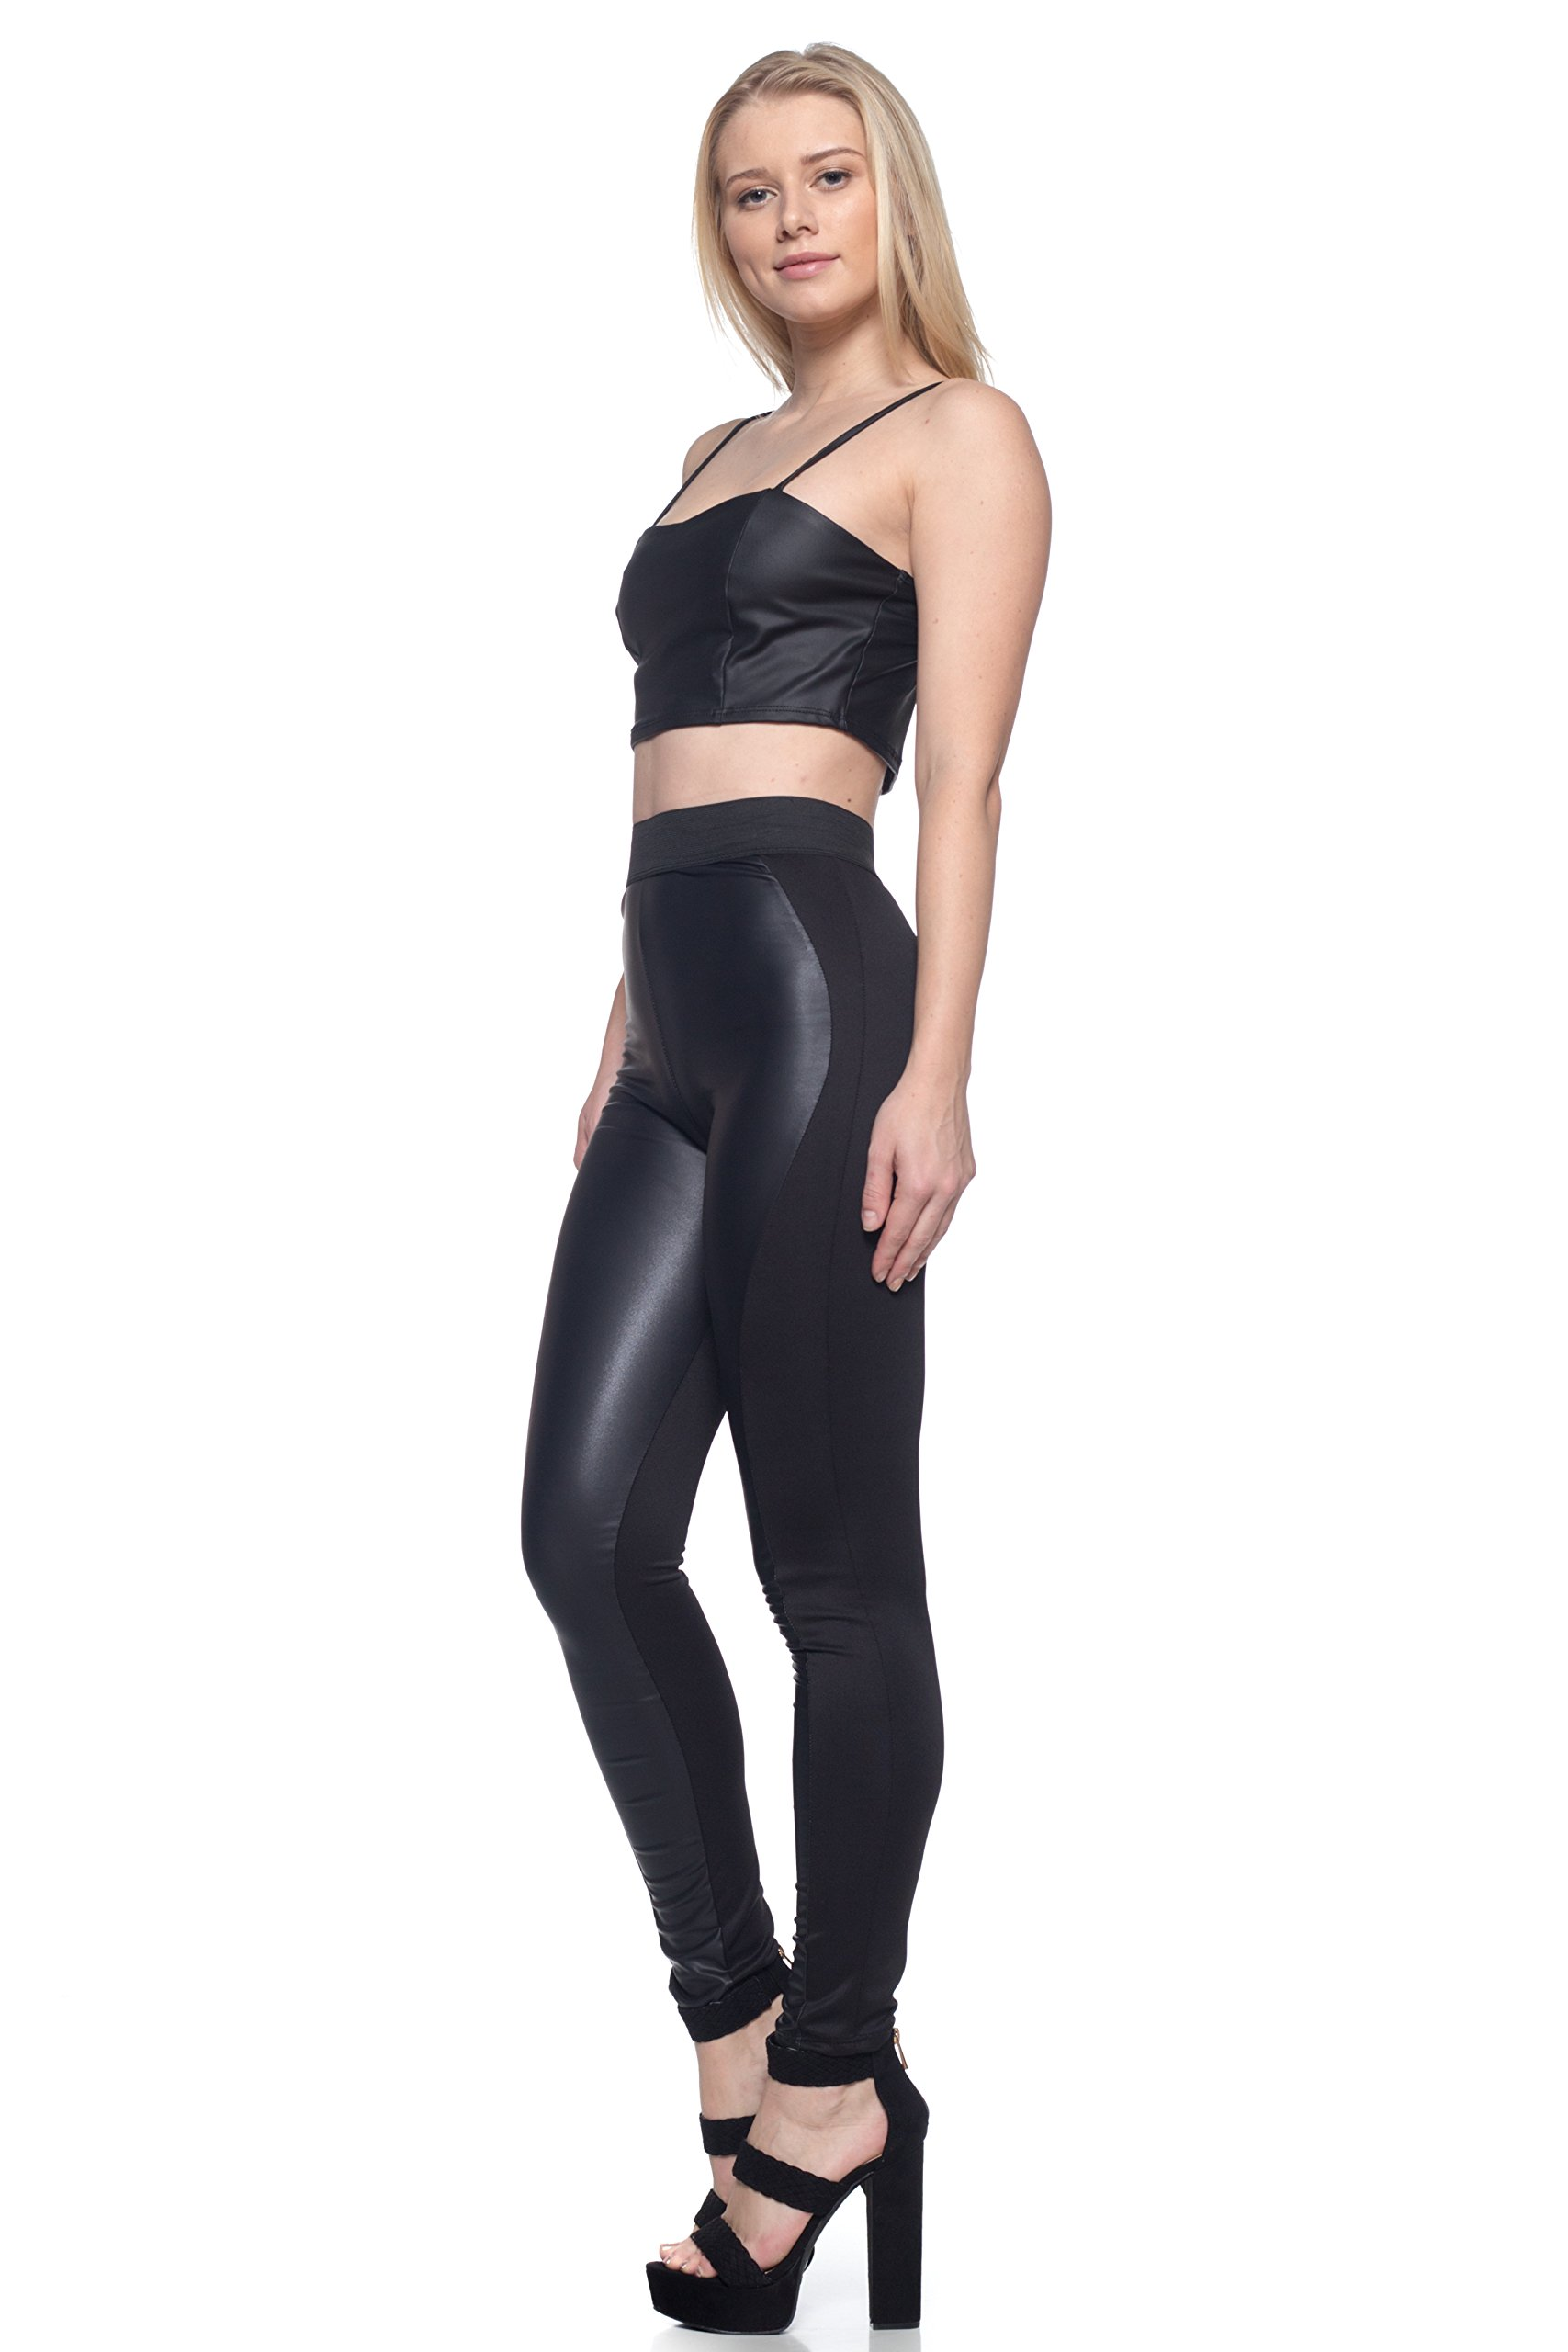 J2 Love Made in USA Front Faux Leather Moto Legging (up to 5X) by Cemi Ceri (Image #3)